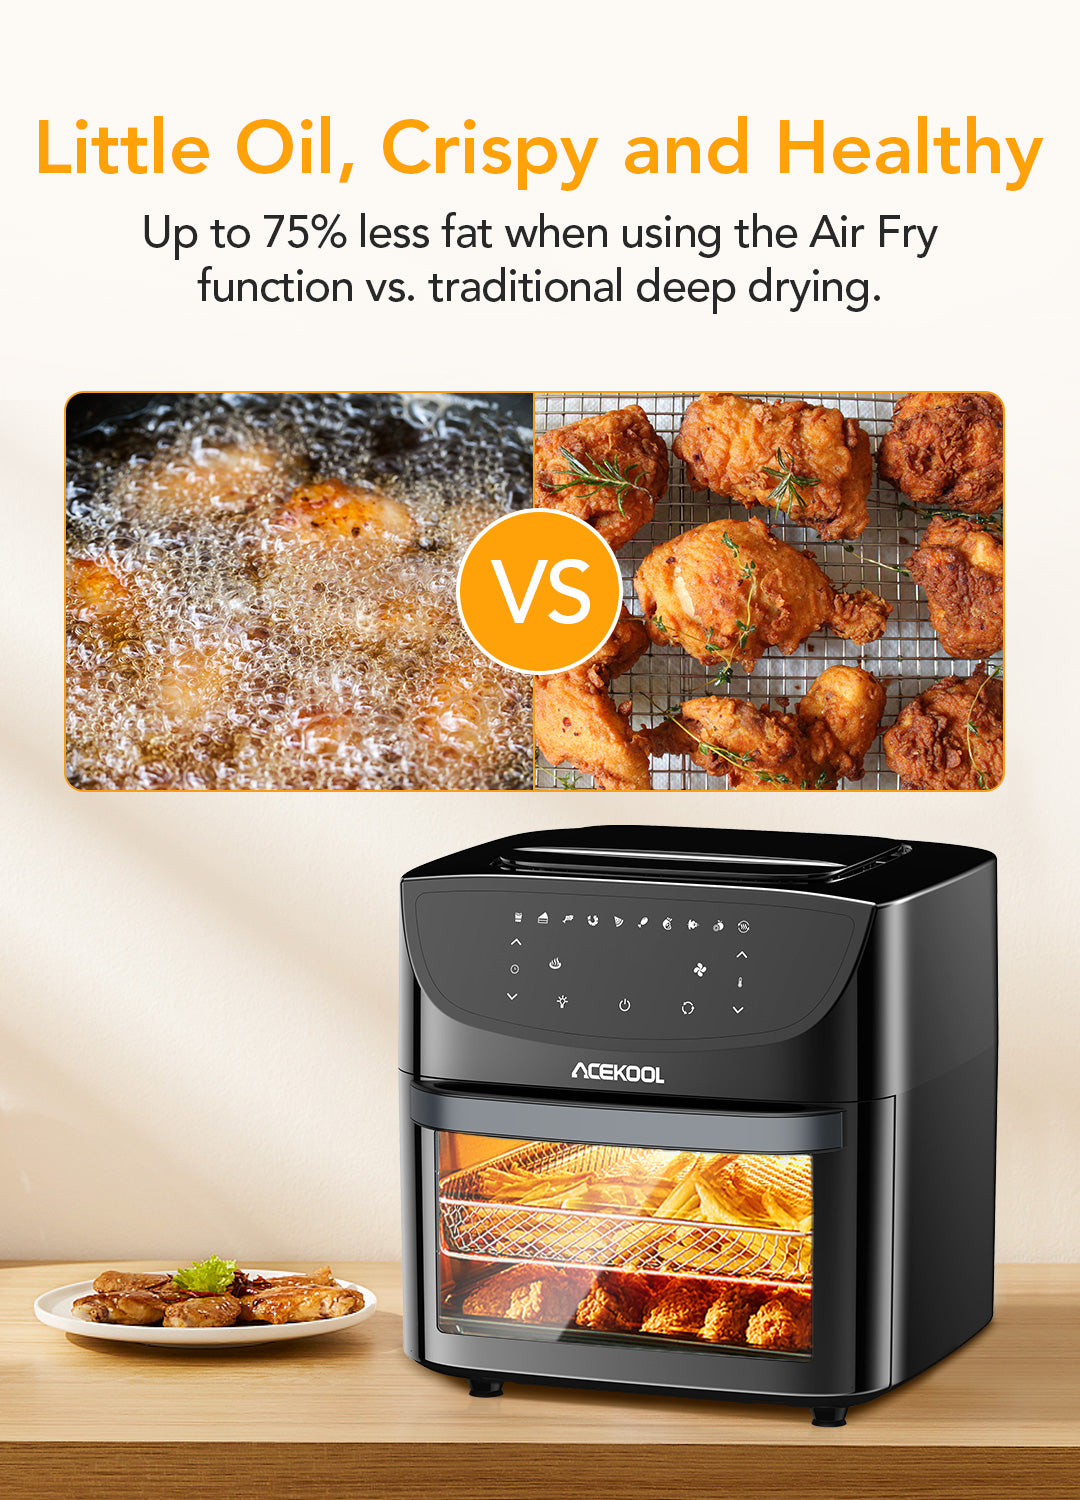 Healthy cook with less oil using Acekool Air Fryer FT1